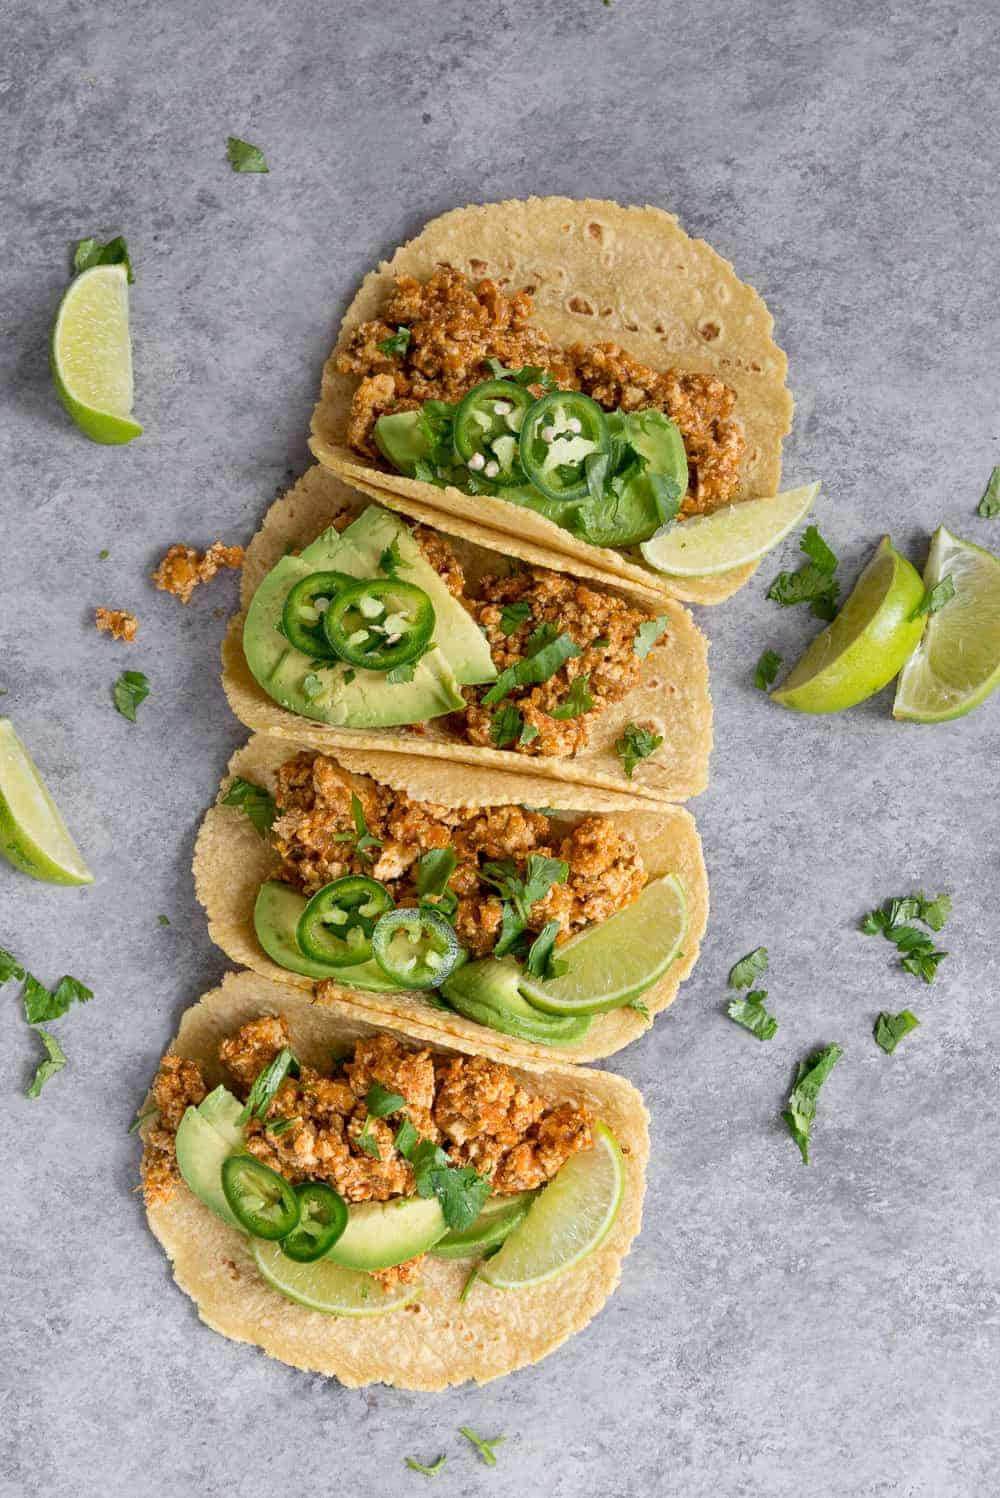 Garnish your Tinga tacos with fresh sliced avocado, jalapeños and a drizzle of lime juice